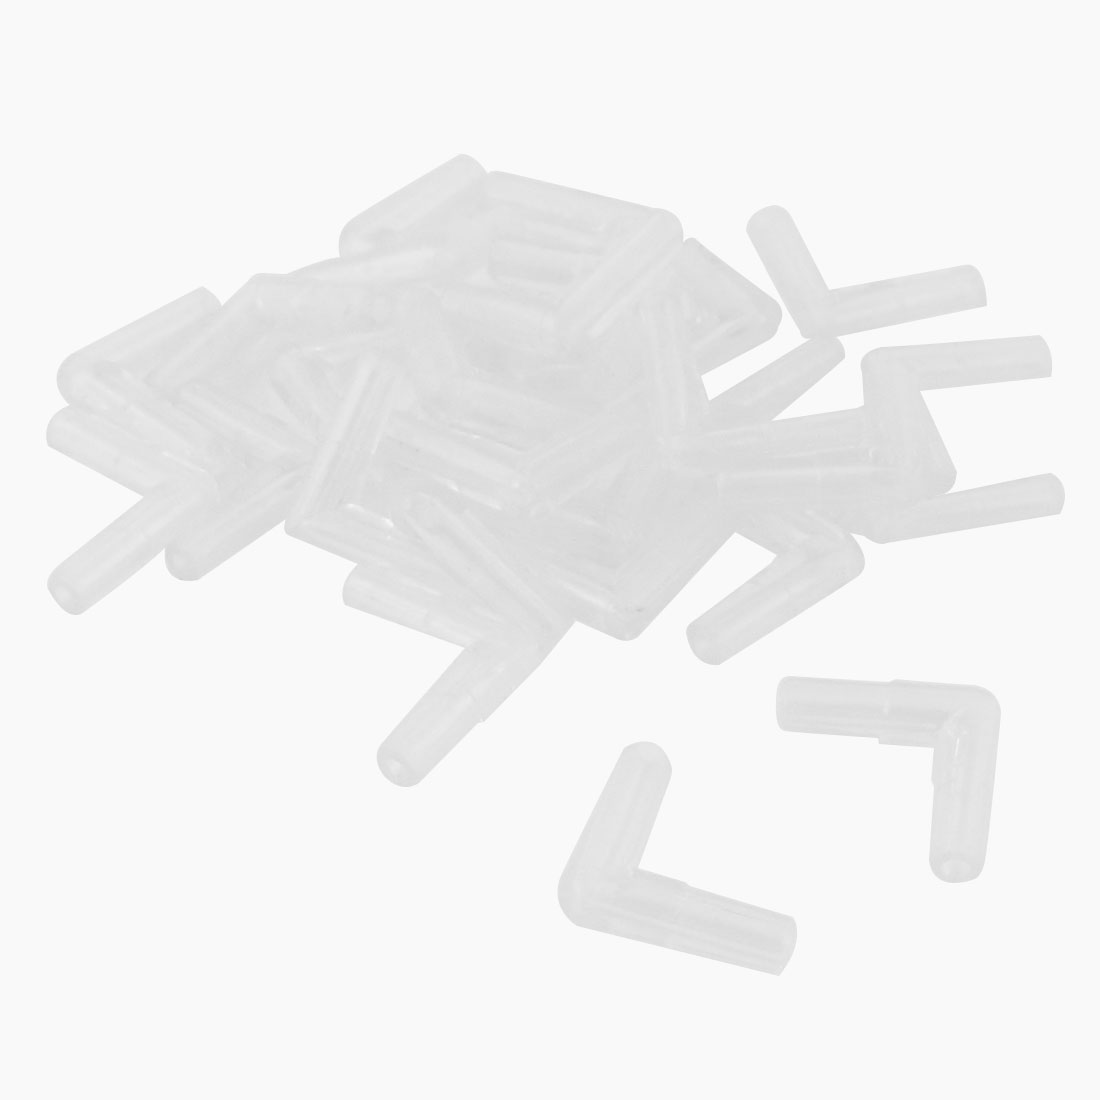 Aquarium Tank Clear Plastic 2 Way Air Valve Line Connectors 30 Pcs